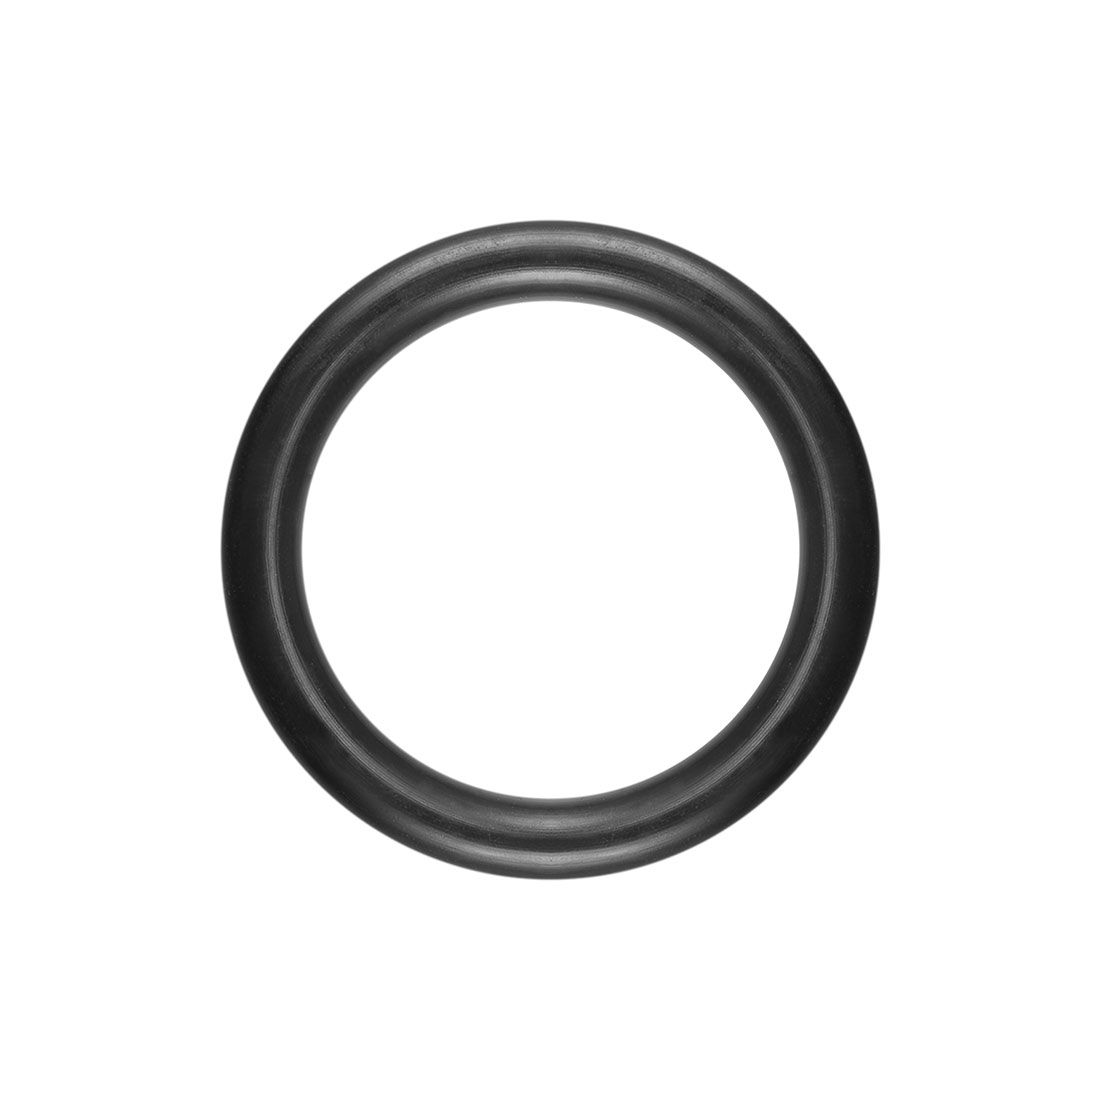 O-Rings Nitrile Rubber 24mm x 32mm x 4mm Round Seal Gasket